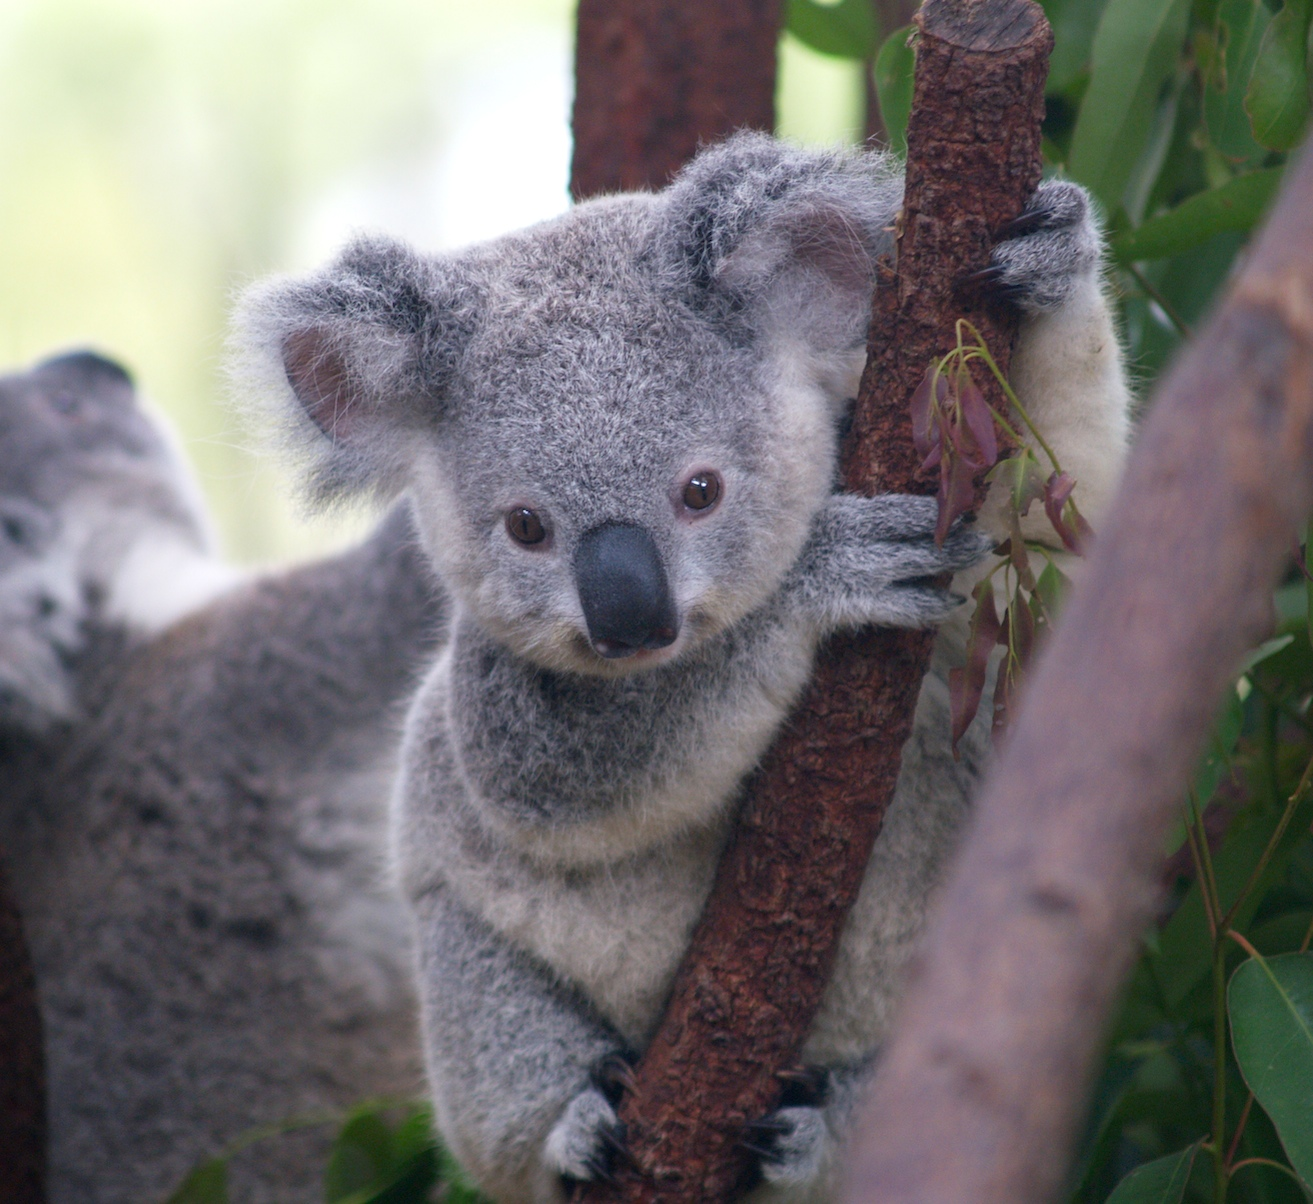 Koalas are one of the cutes animals in my mind